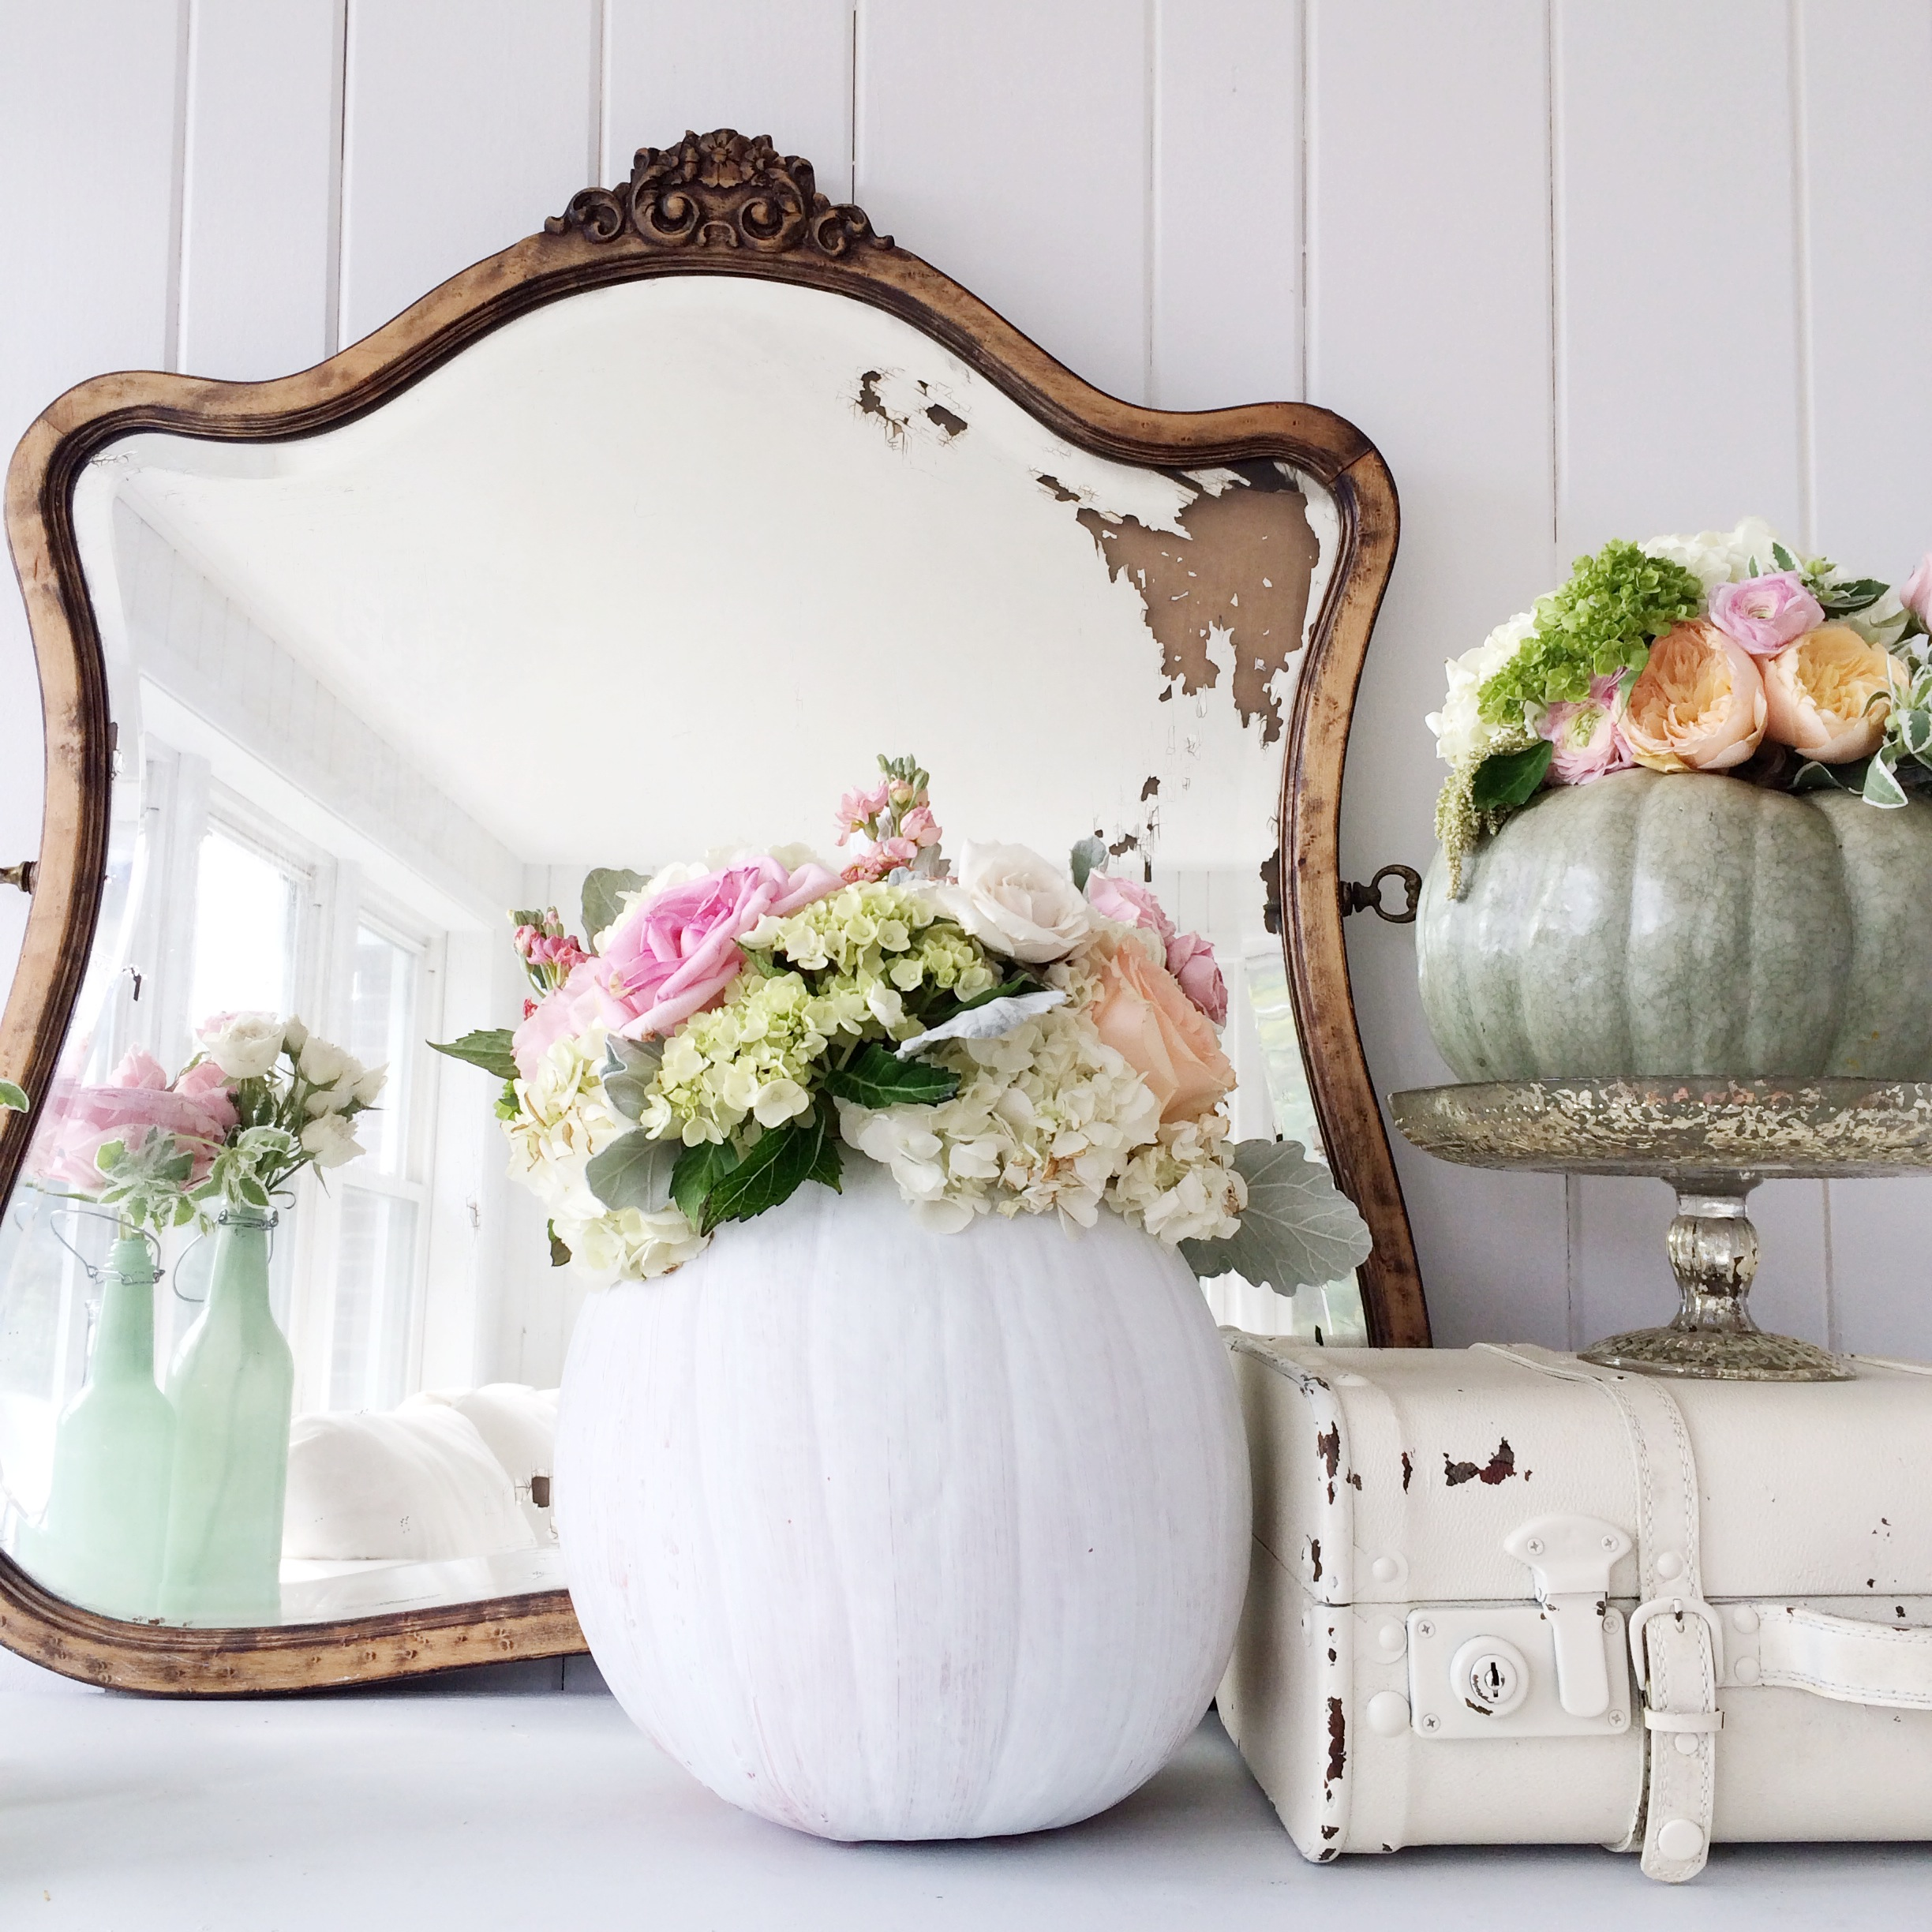 Surprisingly simple yet absolutely lovely pumpkin DIY at Aedriel.com